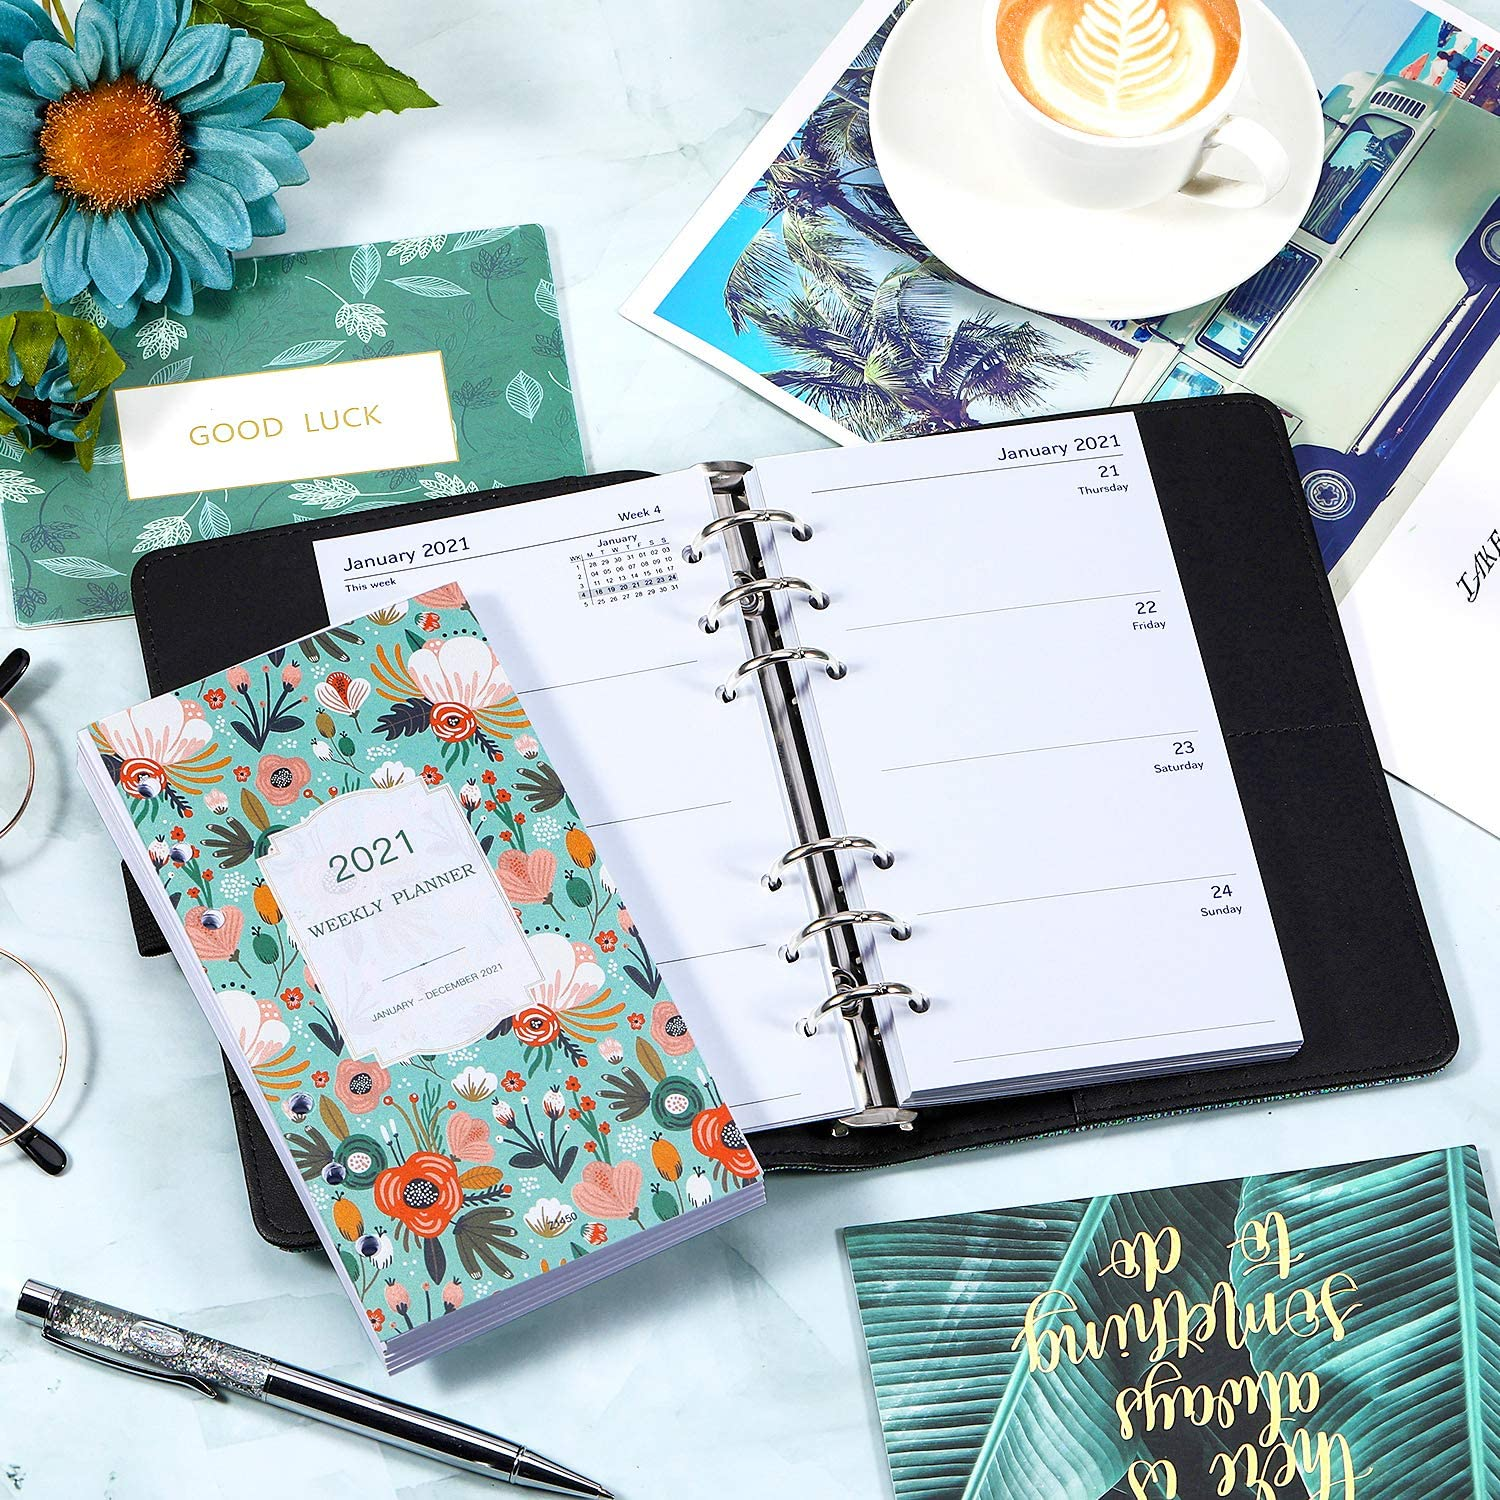 Dec 2021 Personal Diary Refills 2021 Week Jan 2021 2021 Weekly Diary Refill A6 Size 17.3 x 9.5 cm Monday Start 2021 Diary